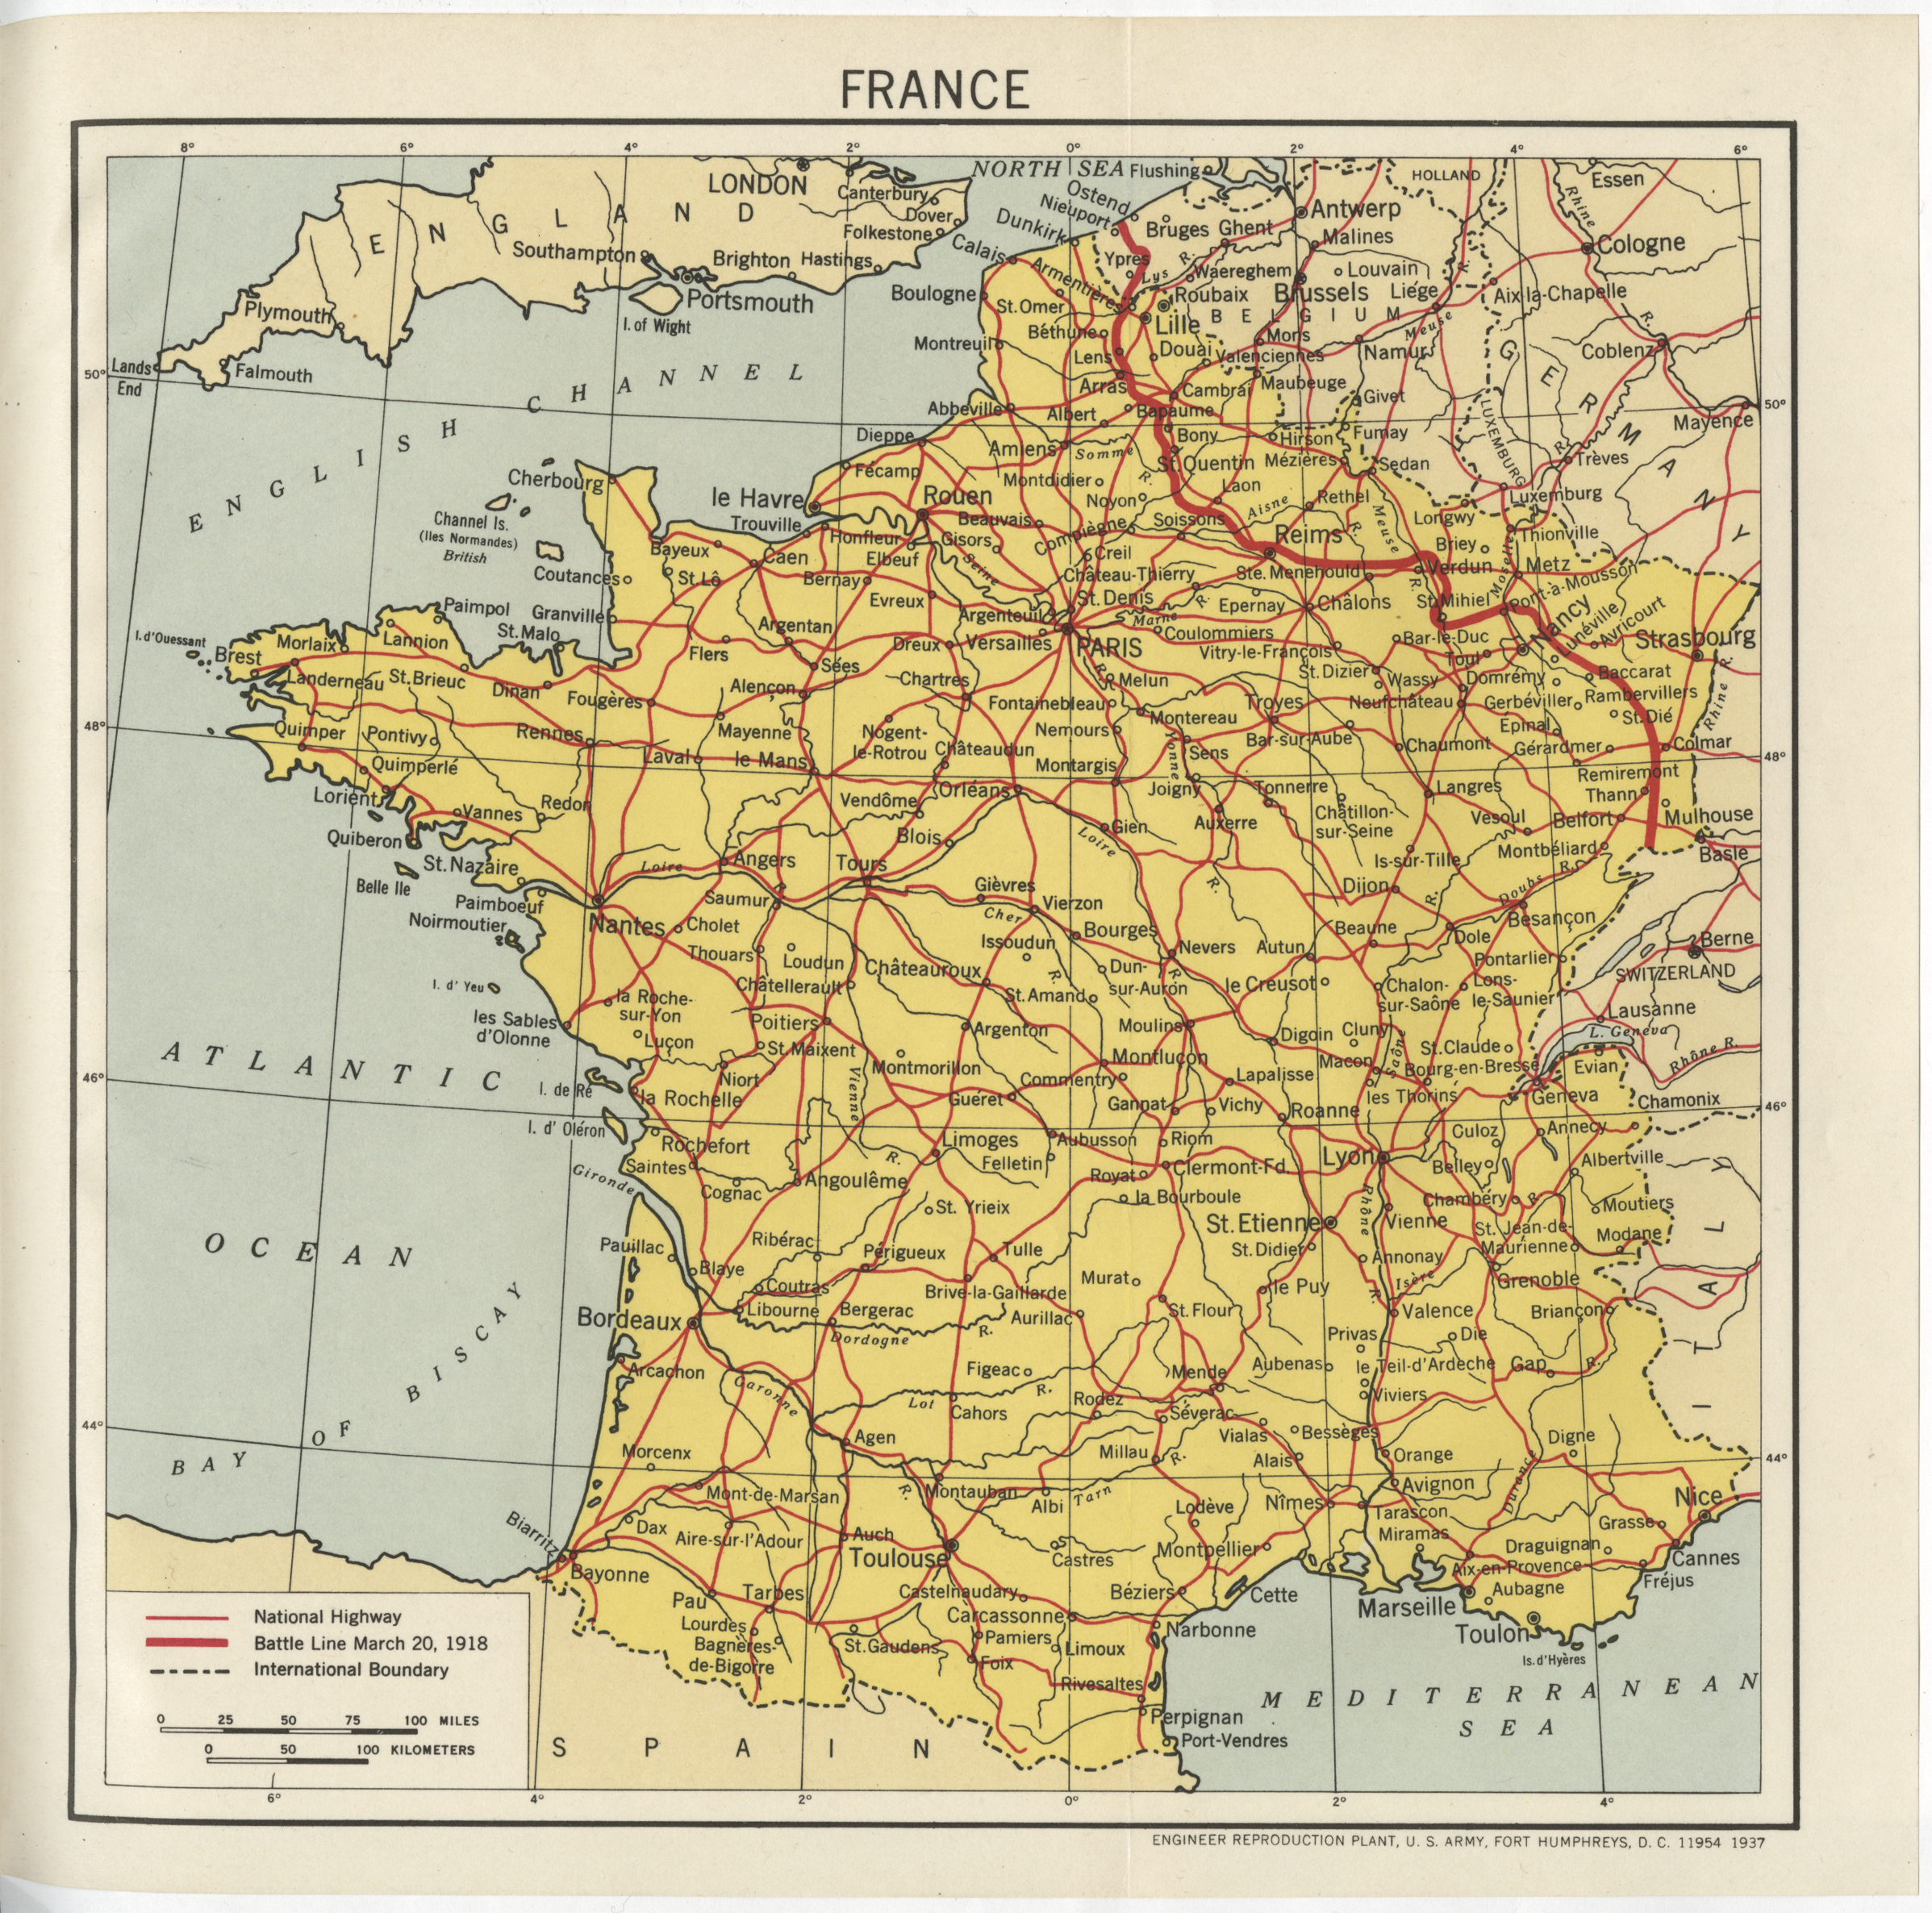 Map Of France During Ww1.World War I Historic Reference Book Now Available On Abmc Gov